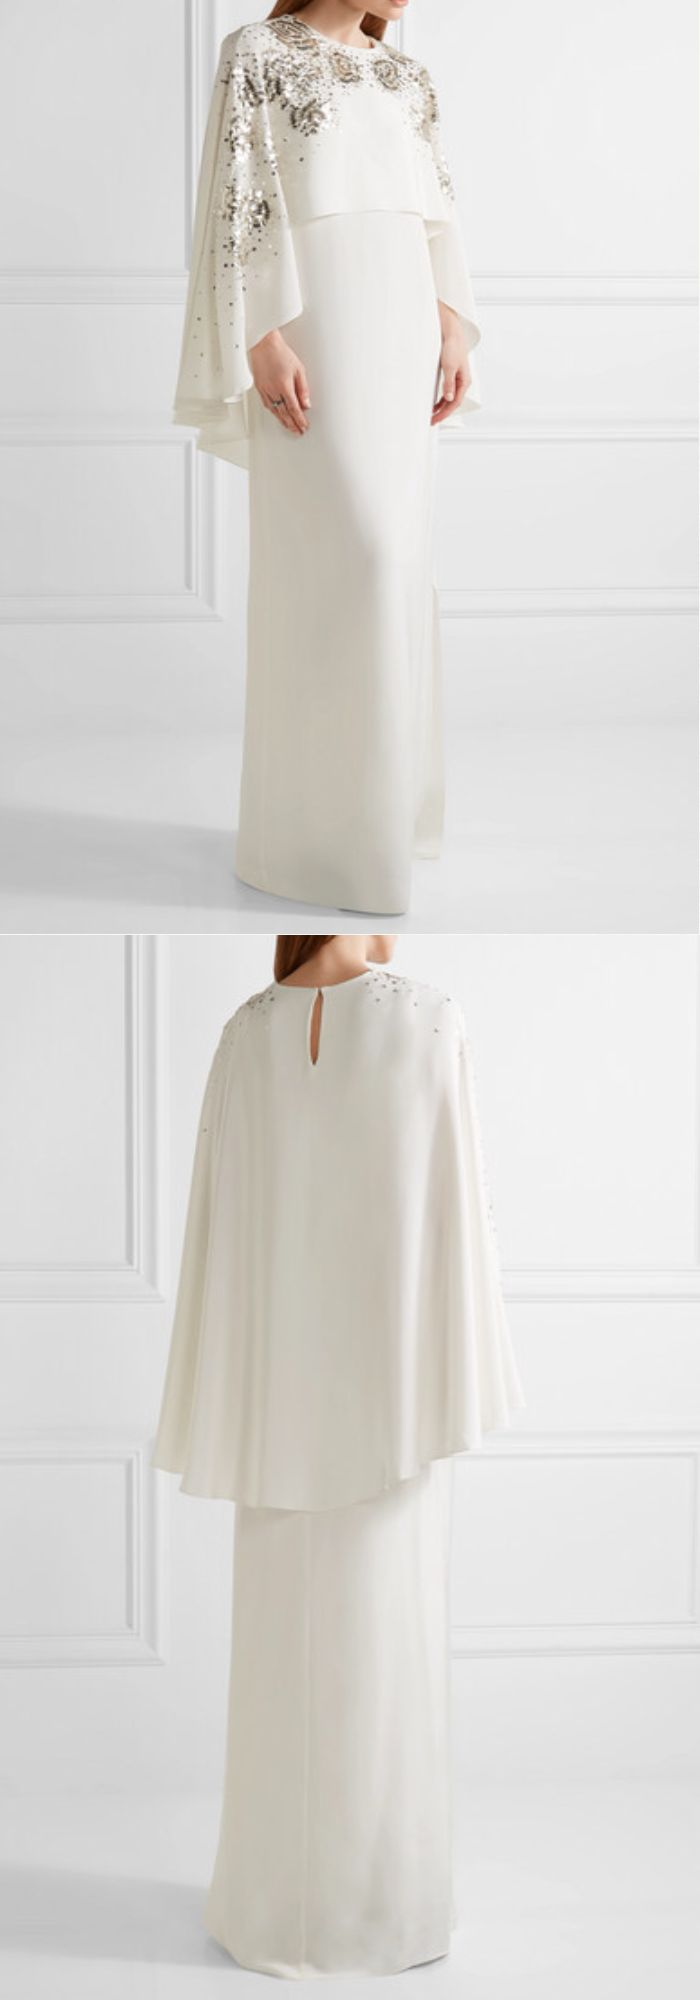 Oscar de la Renta Elegant Cape back embellished Silk - Satin Ivory Gown #ad #weddingdress #bride #cape #embellishment #winterweddings #asianwedding